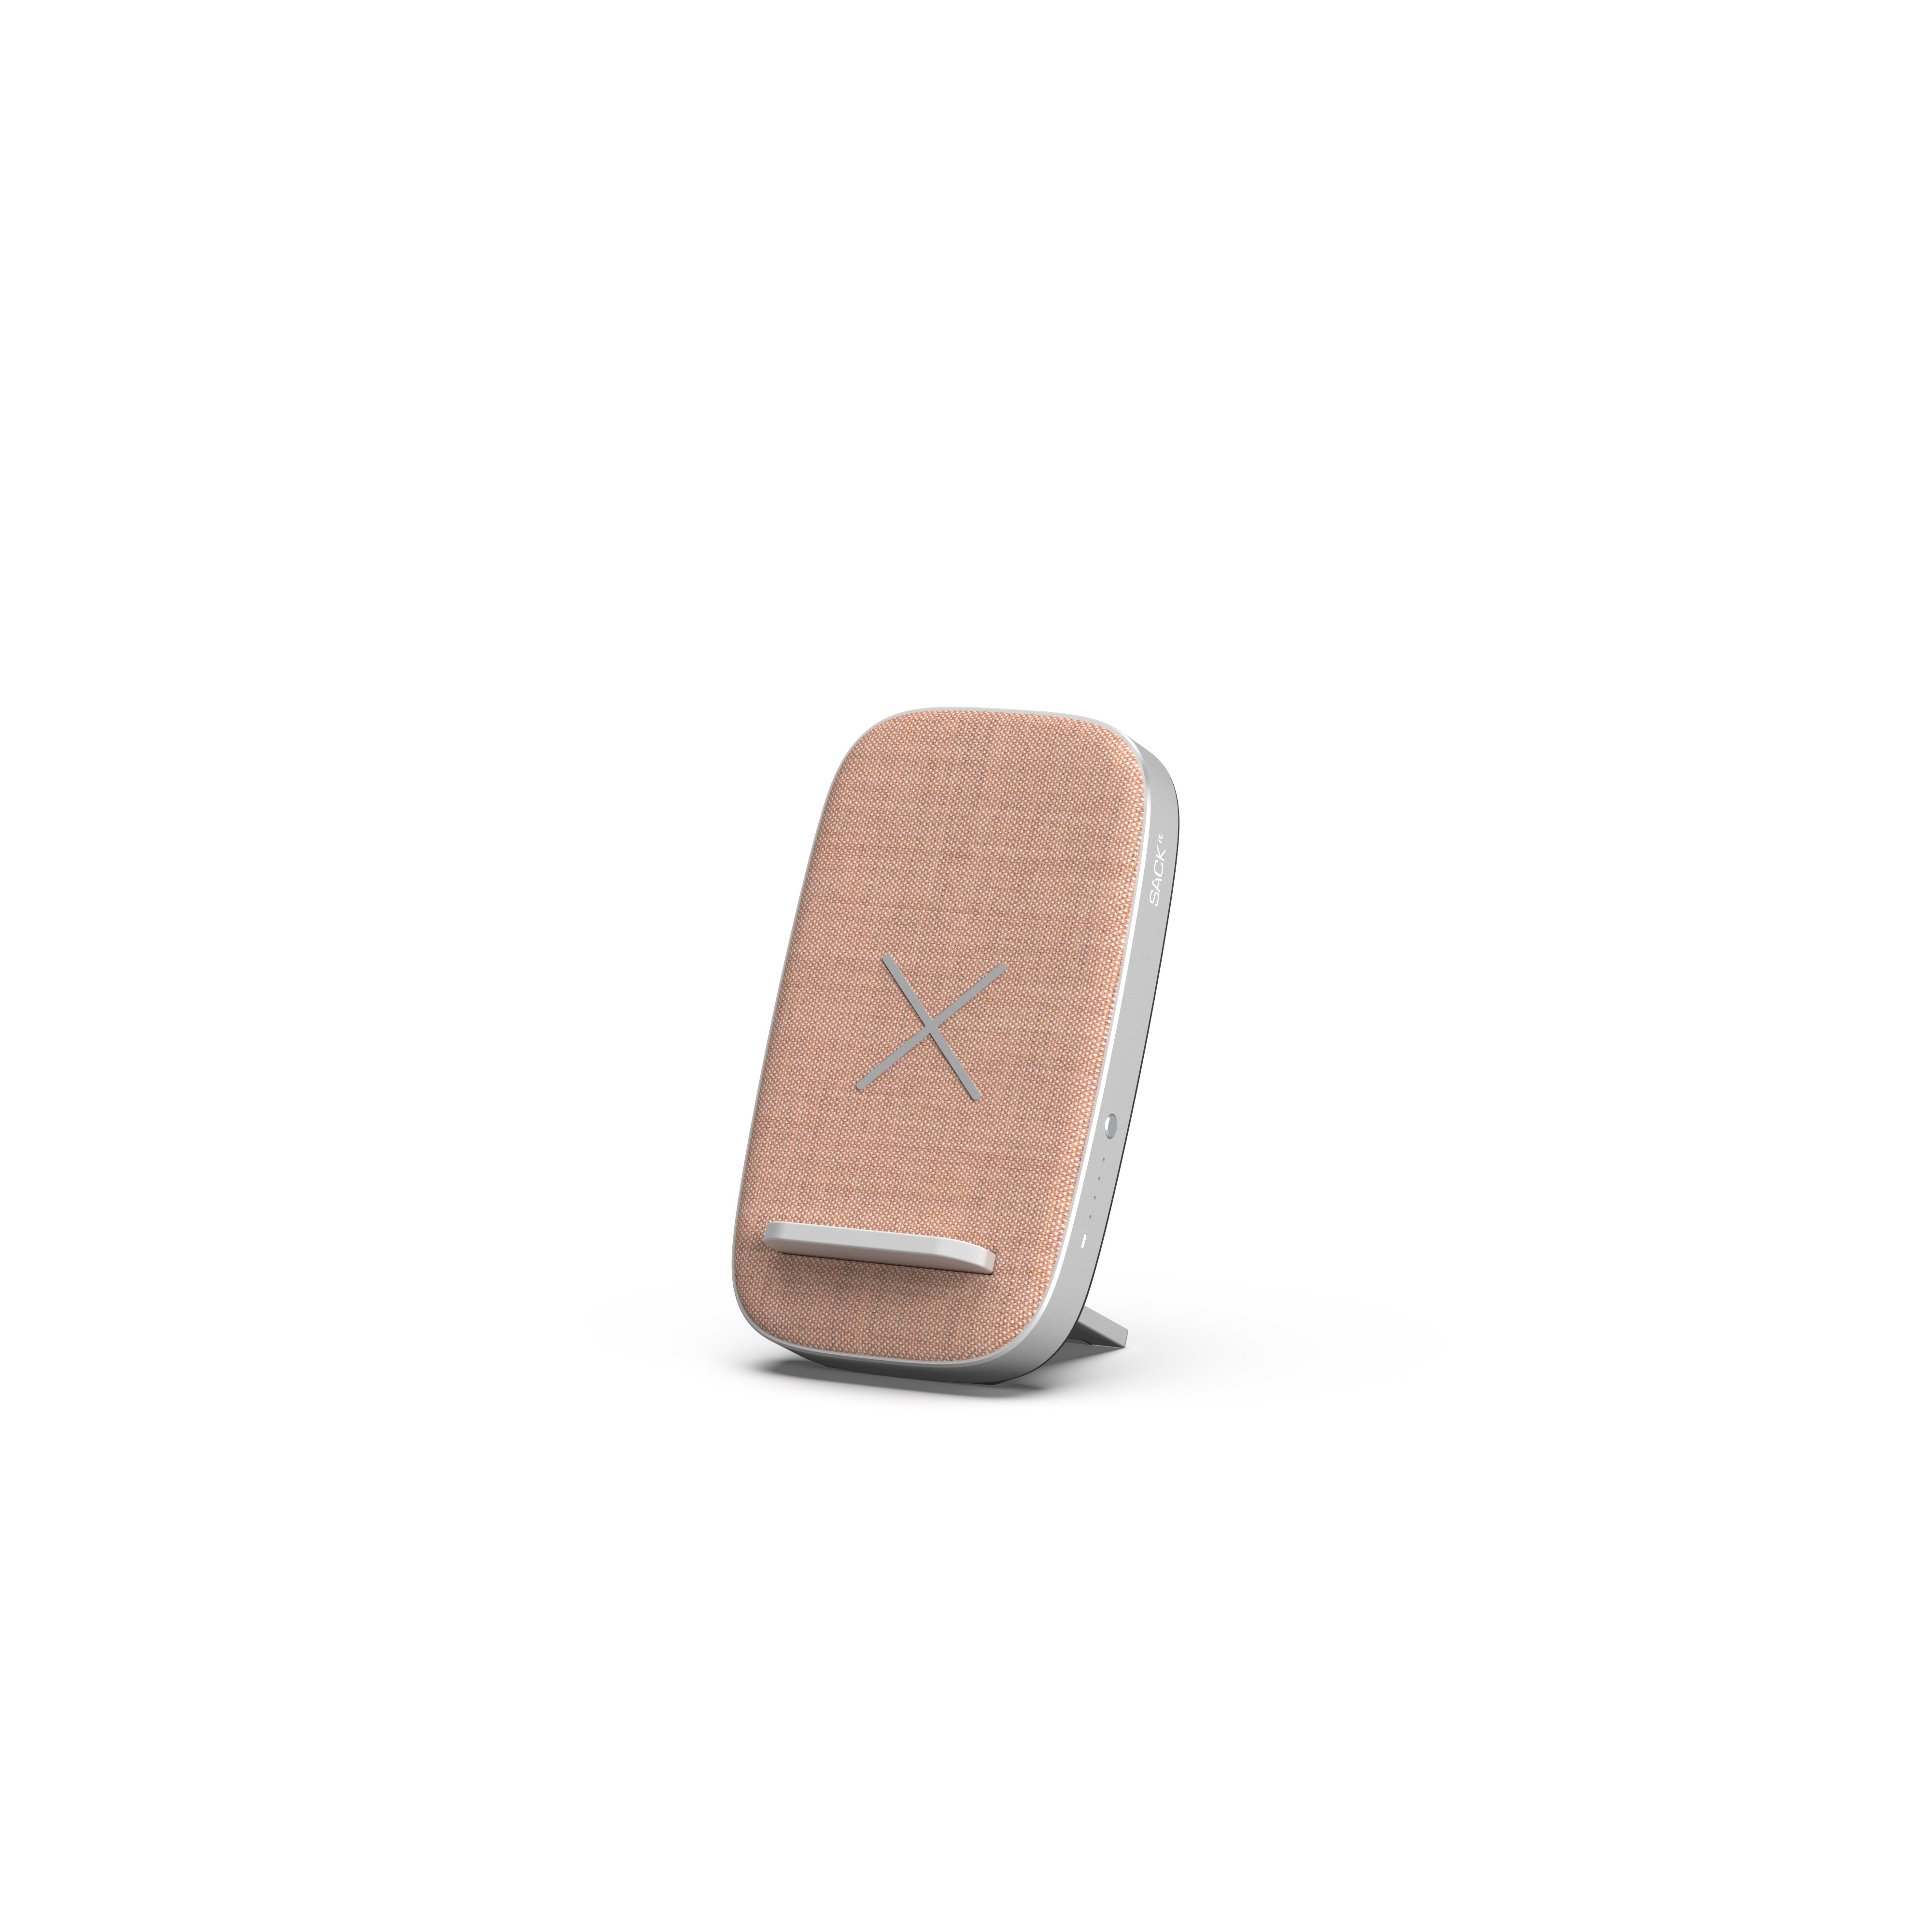 SACKit - CHARGEit Stand– Wireless Charger - Rose